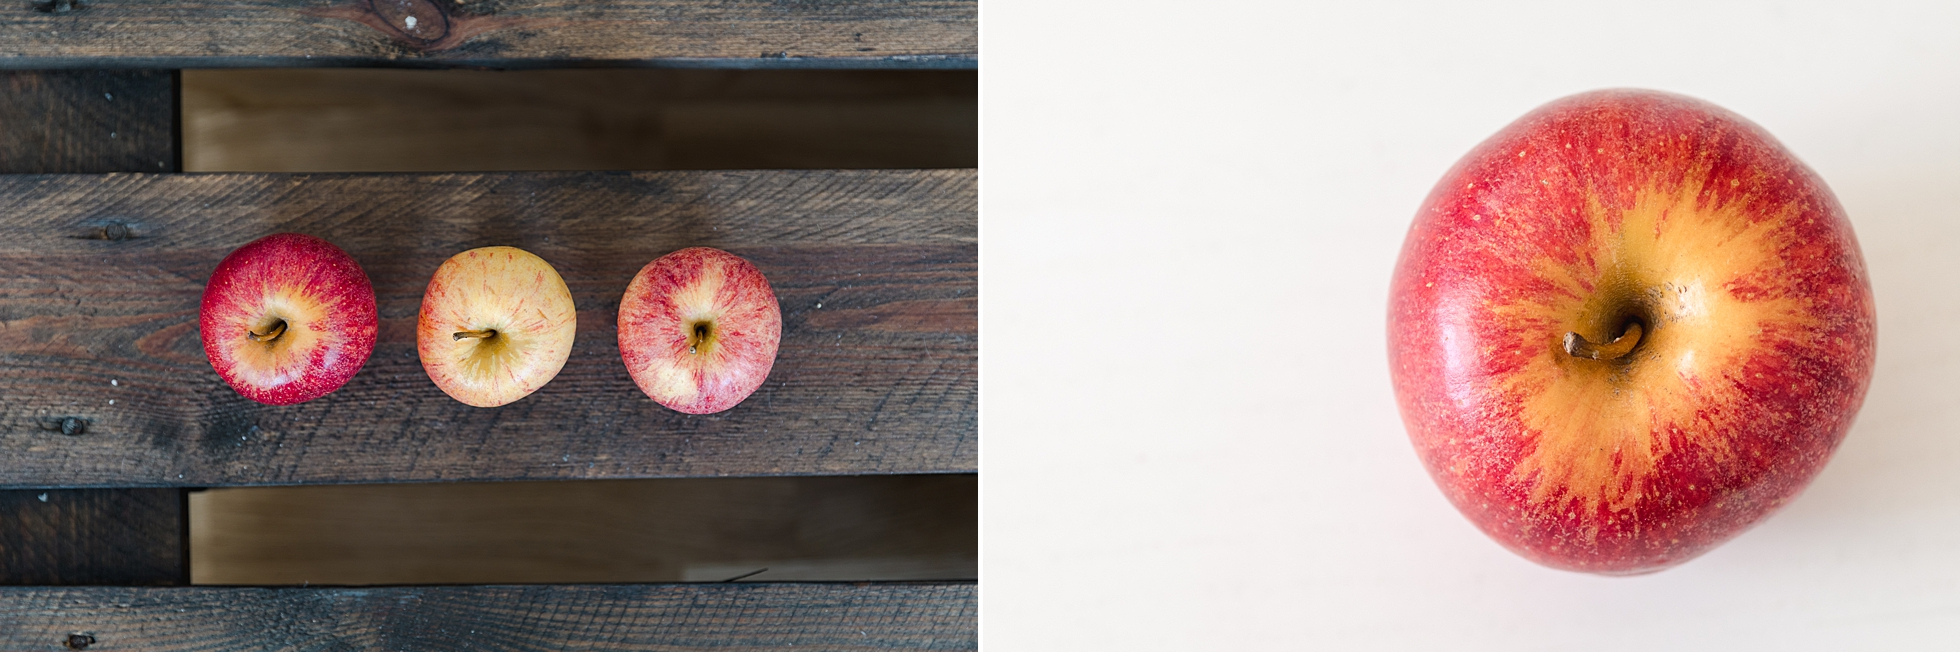 A collage of closeup photos of apples